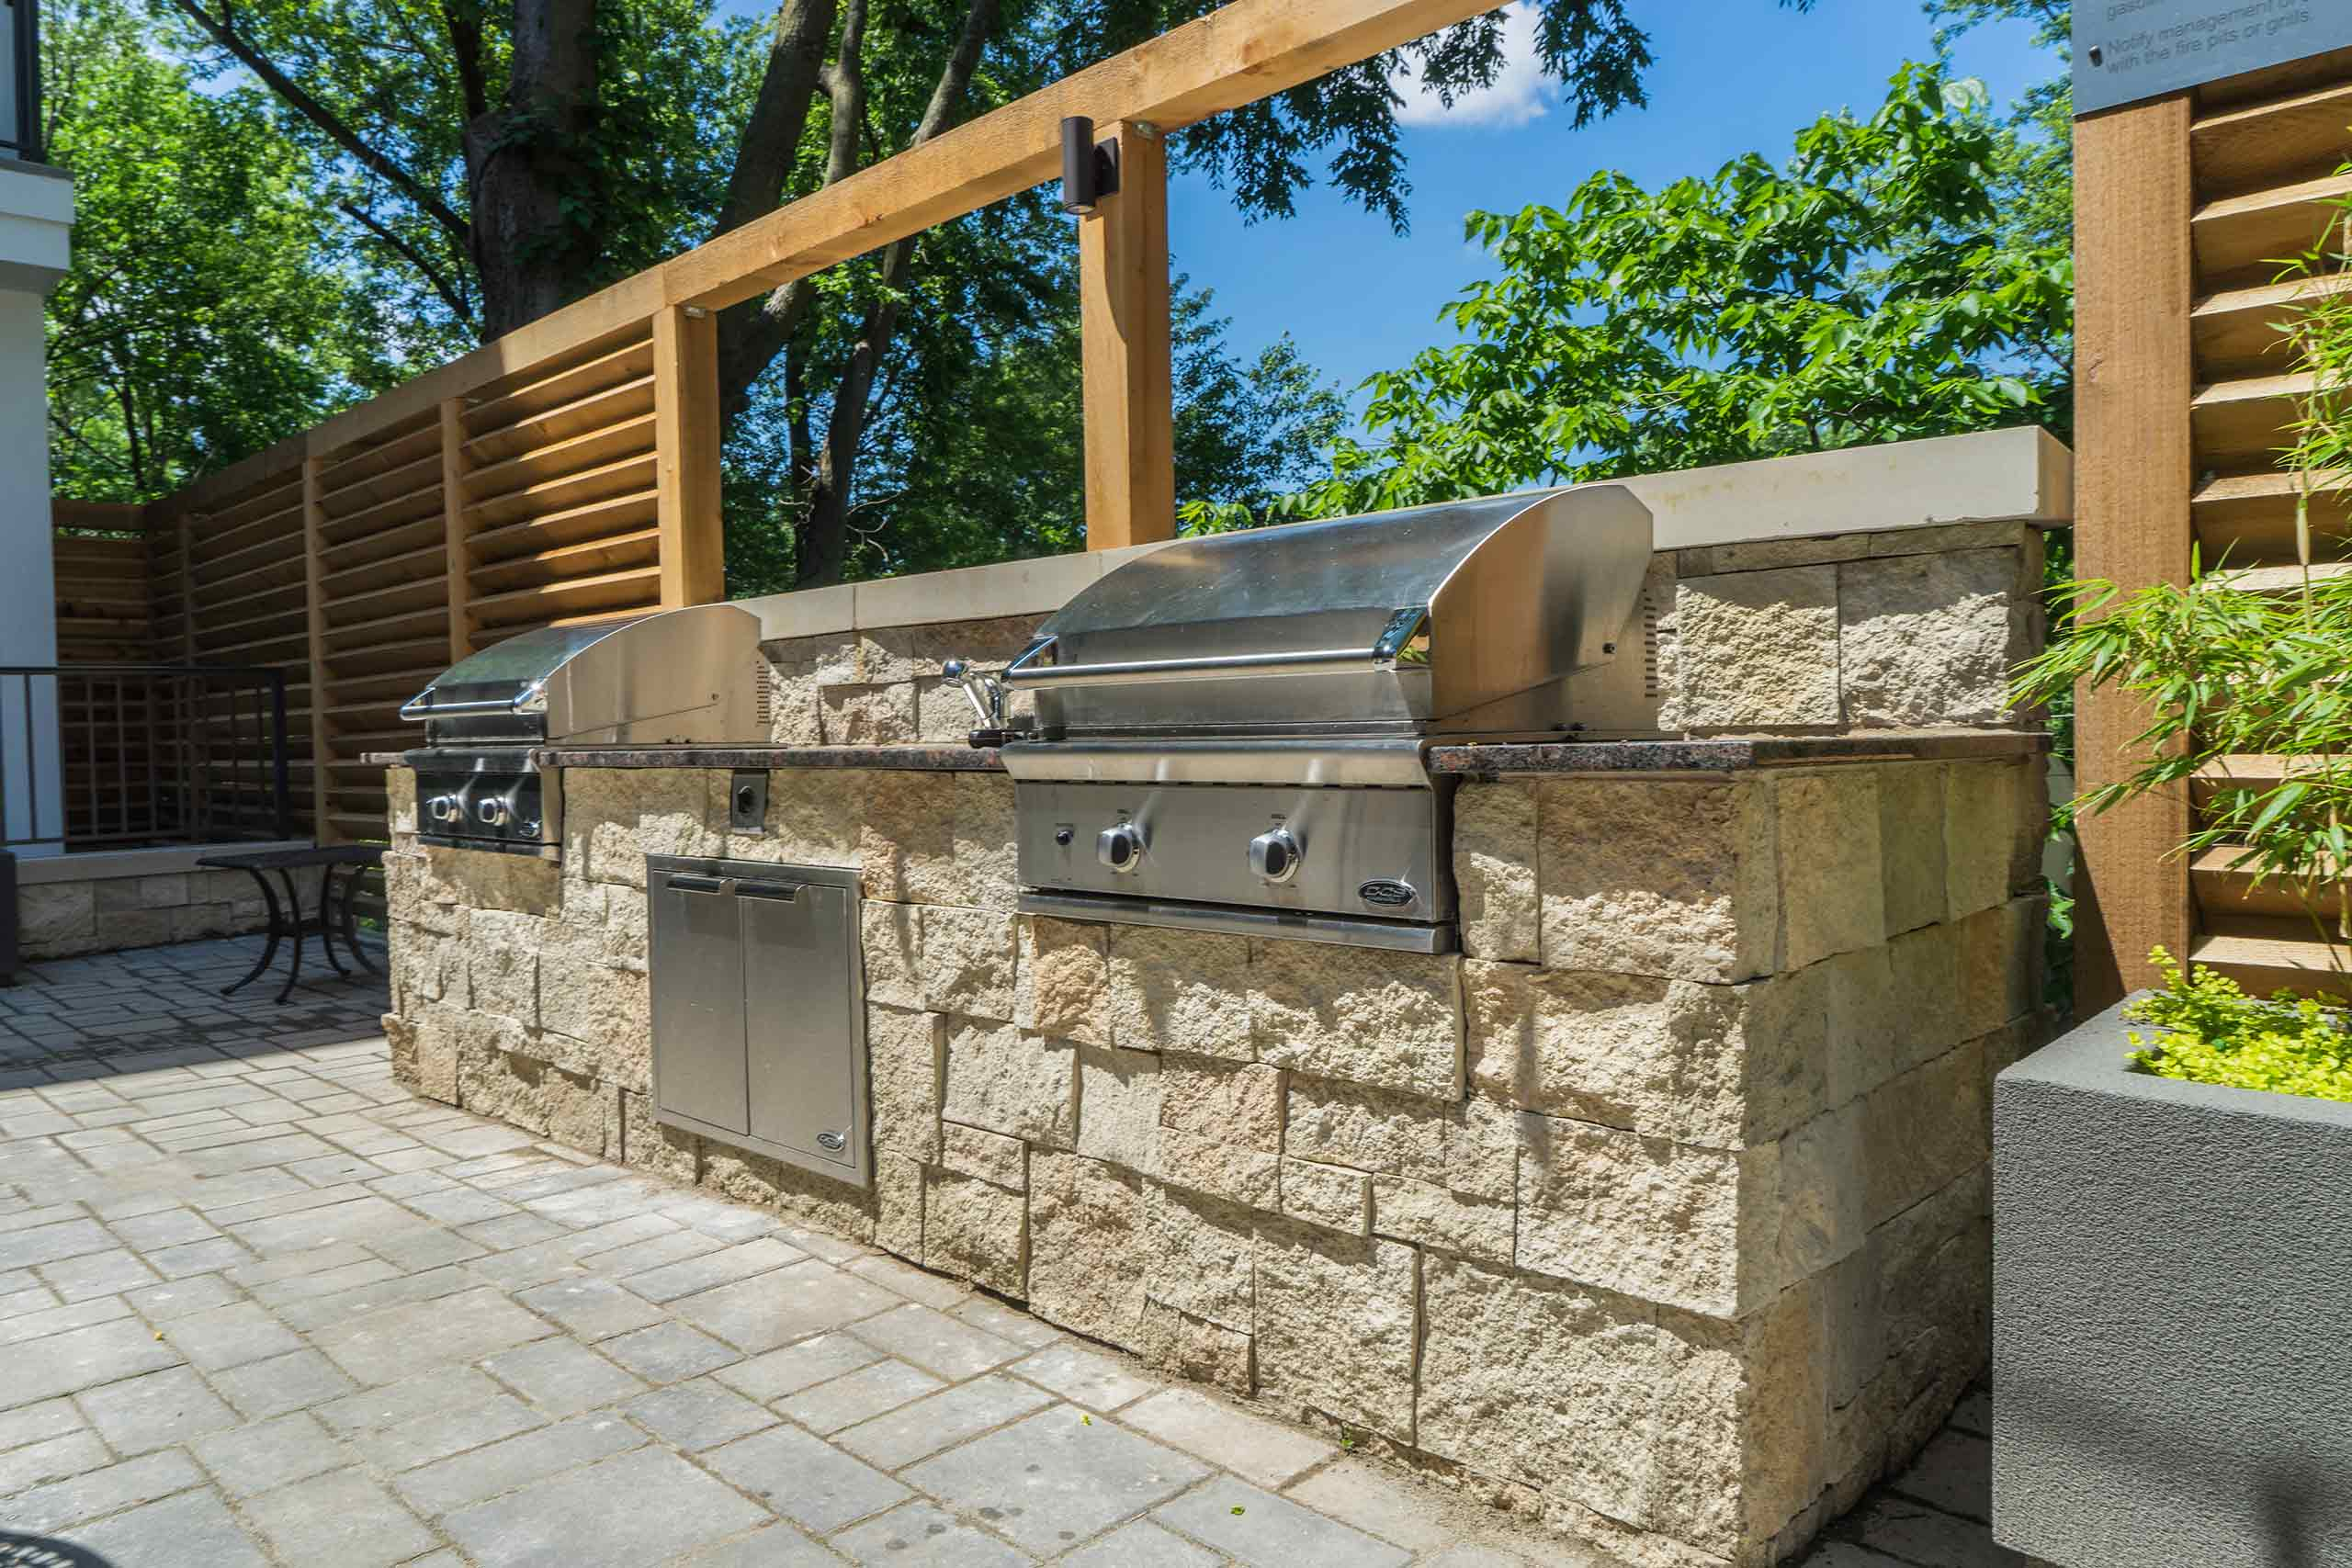 InterUrban-Lofts-Patio-Grills